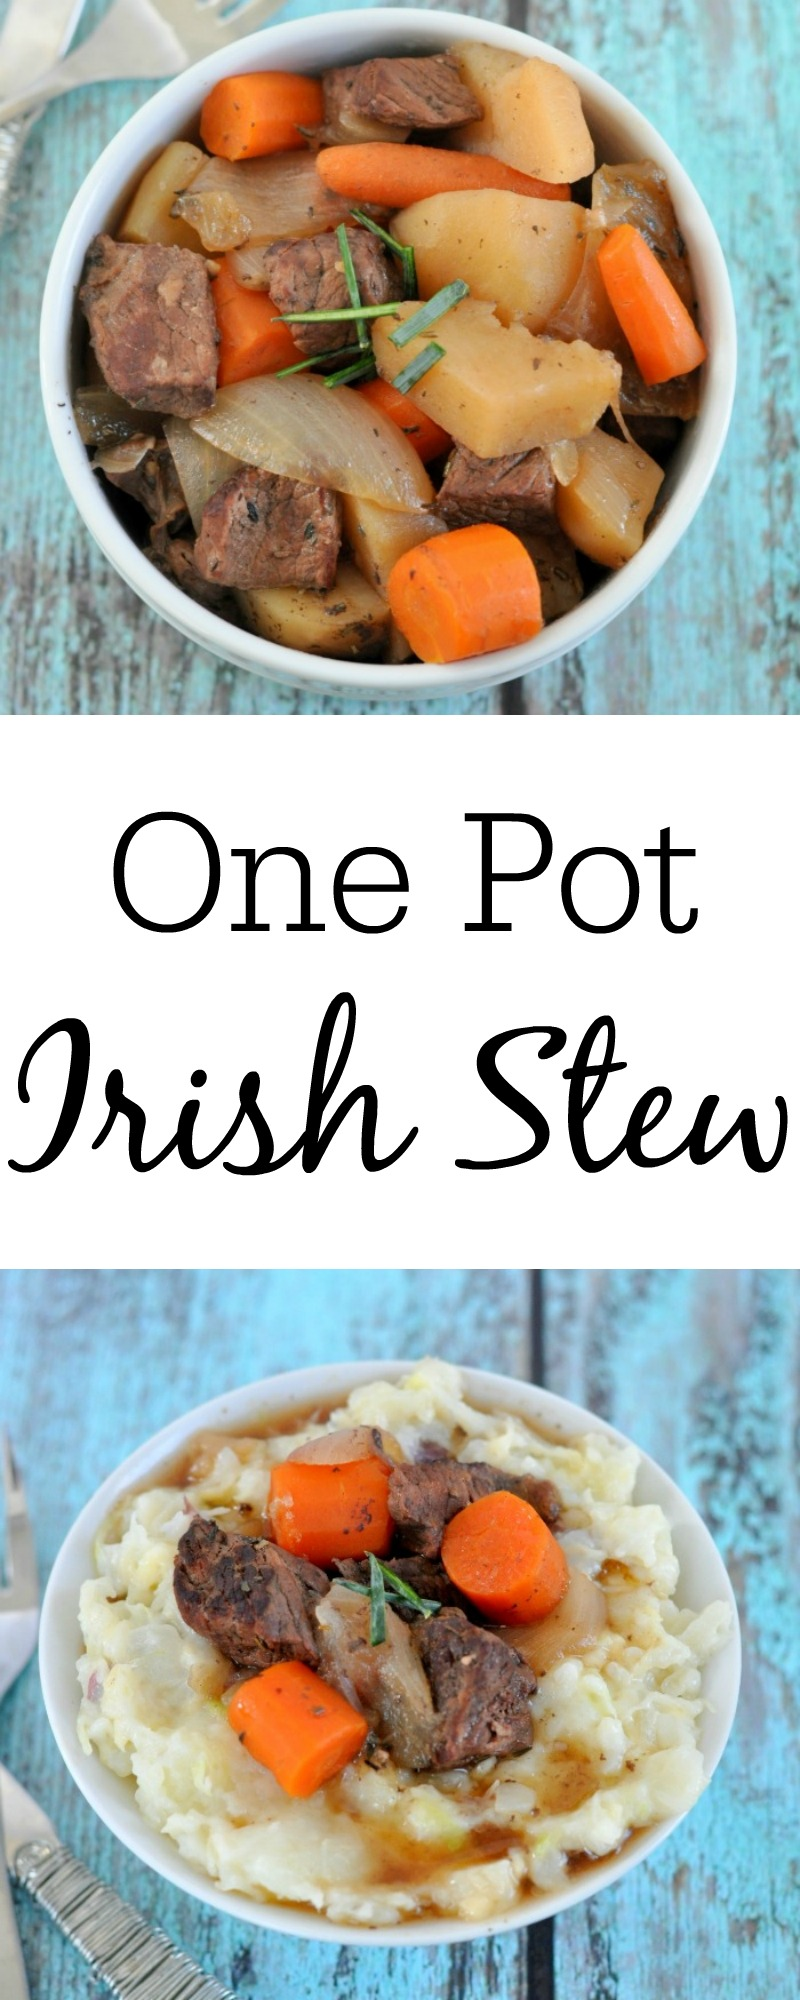 This is the easiest and most delicious St. Patrick's Day recipe you will make! One pot Irish stew is perfect for anytime of year.